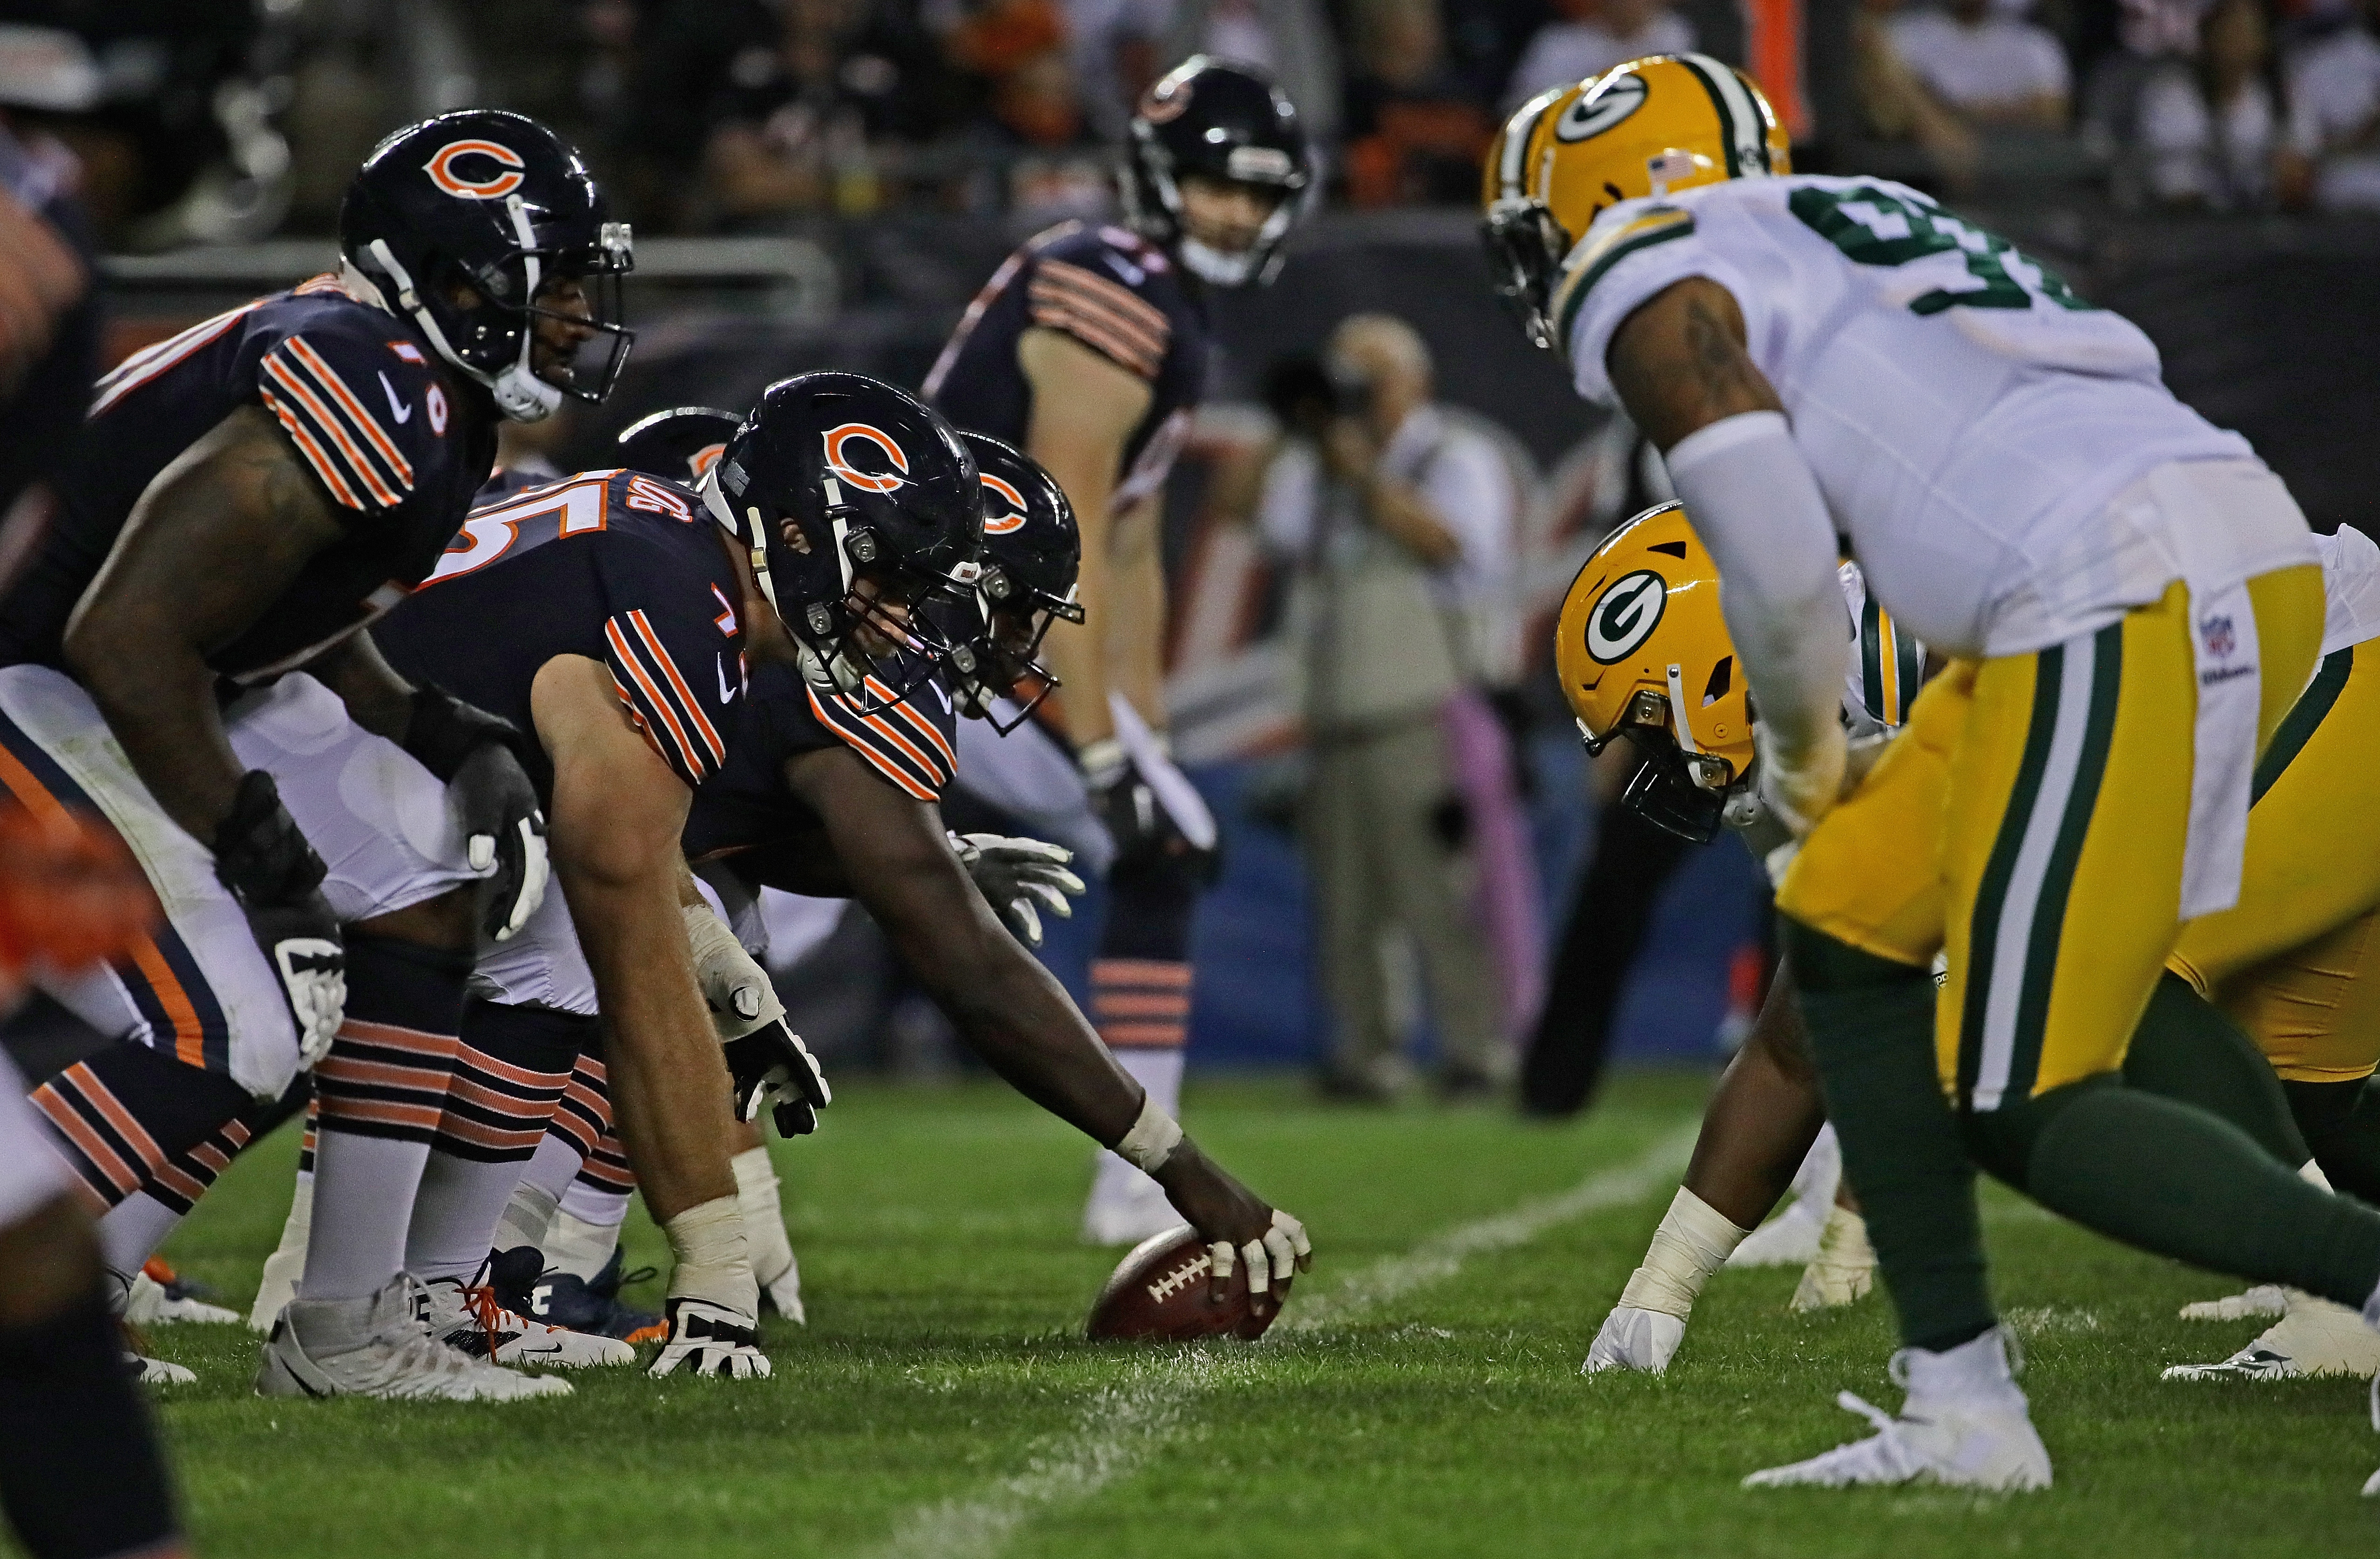 The Bears and Packers line up against each other in the season opener.